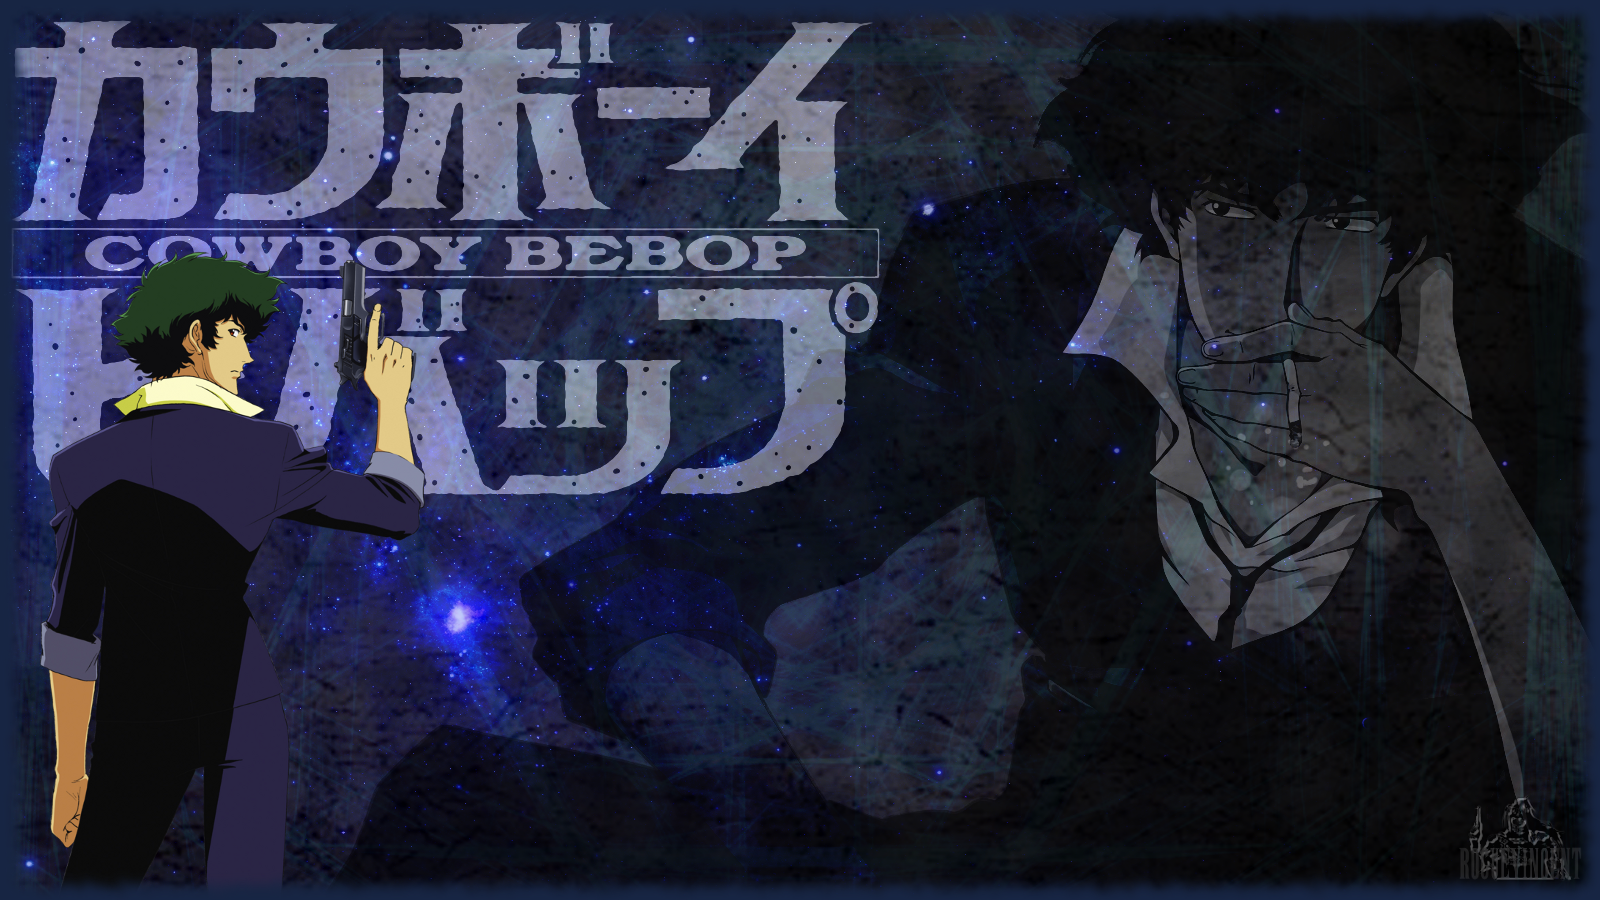 Cowboy Bebop Spike Spiegel Wallpaper by RogueVincent on 1600x900